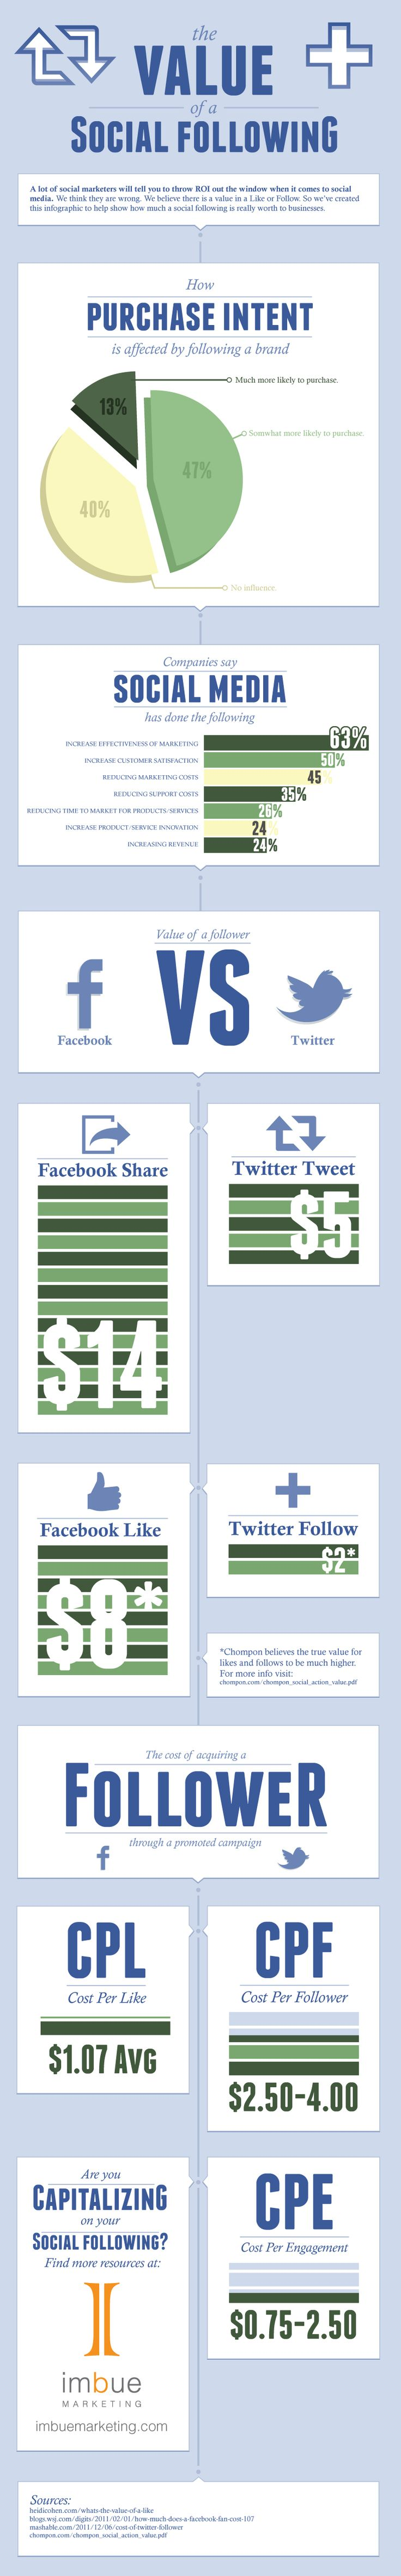 The Value of Social Media Per Dollar - Social Media